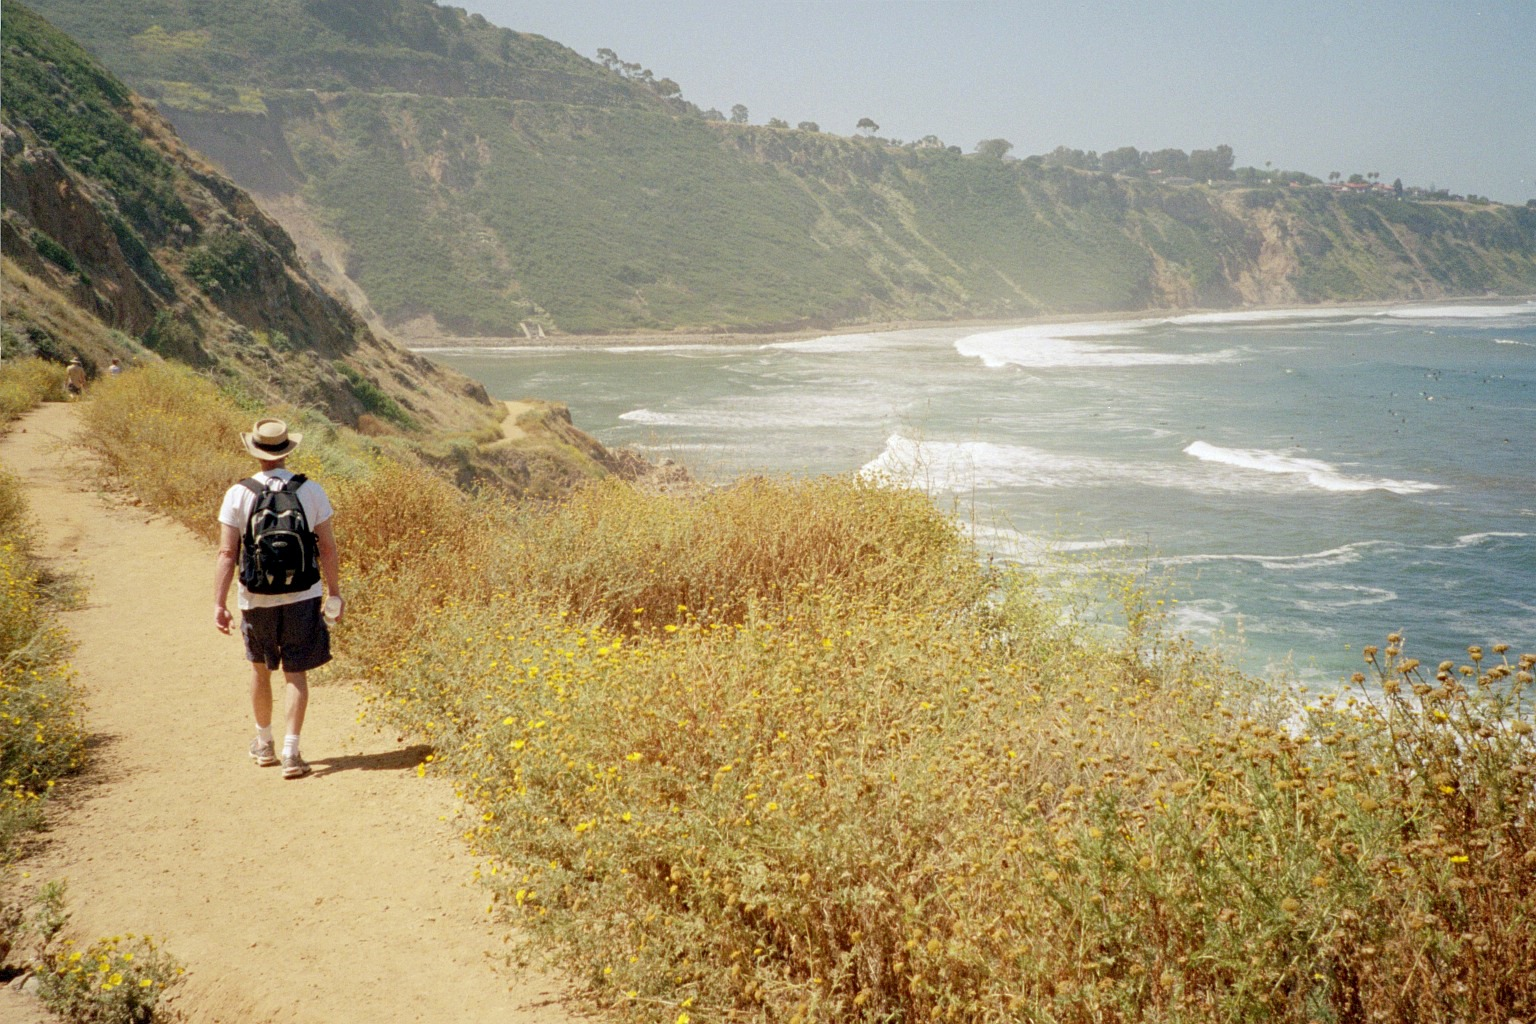 Hiking in Redondo Beach, CA